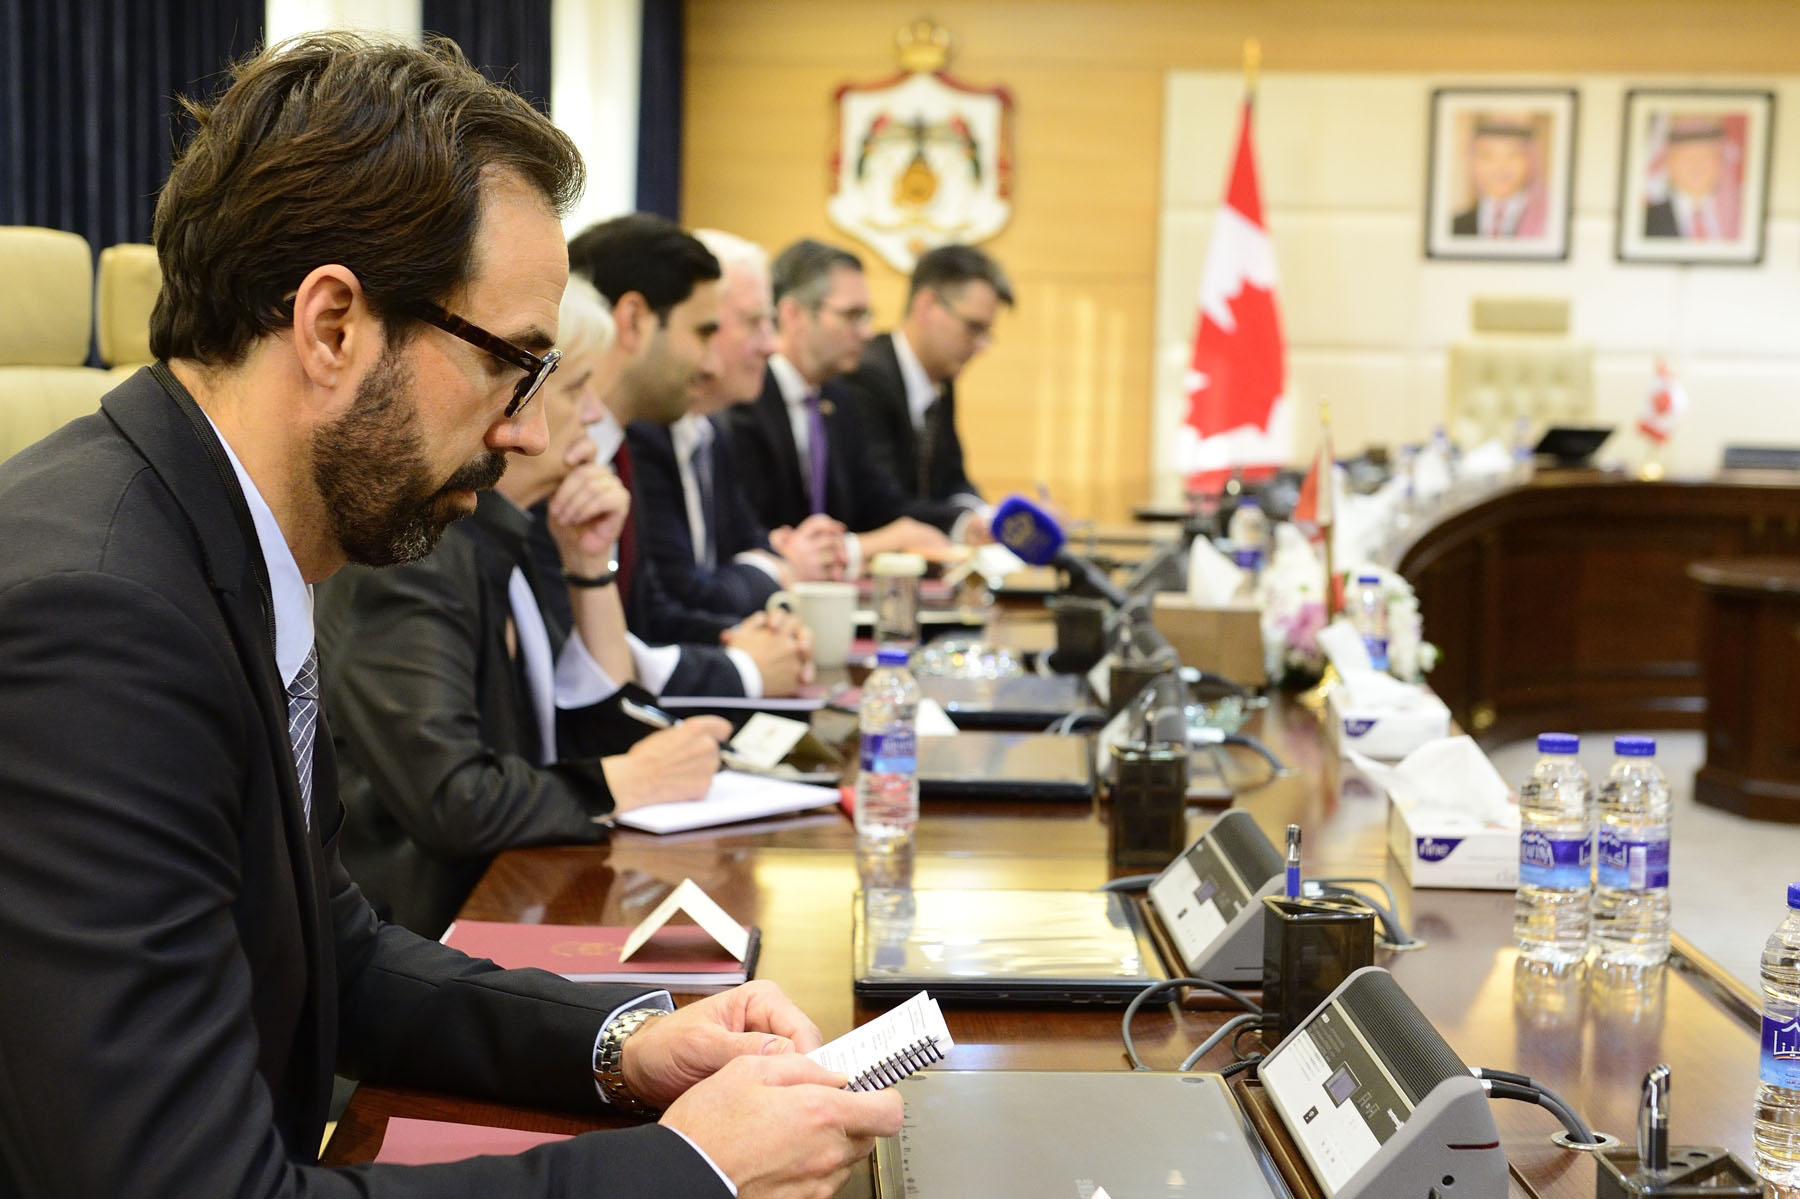 Mr. André François Giroux, Deputy Chief of Protocol Canada, attended the meeting.